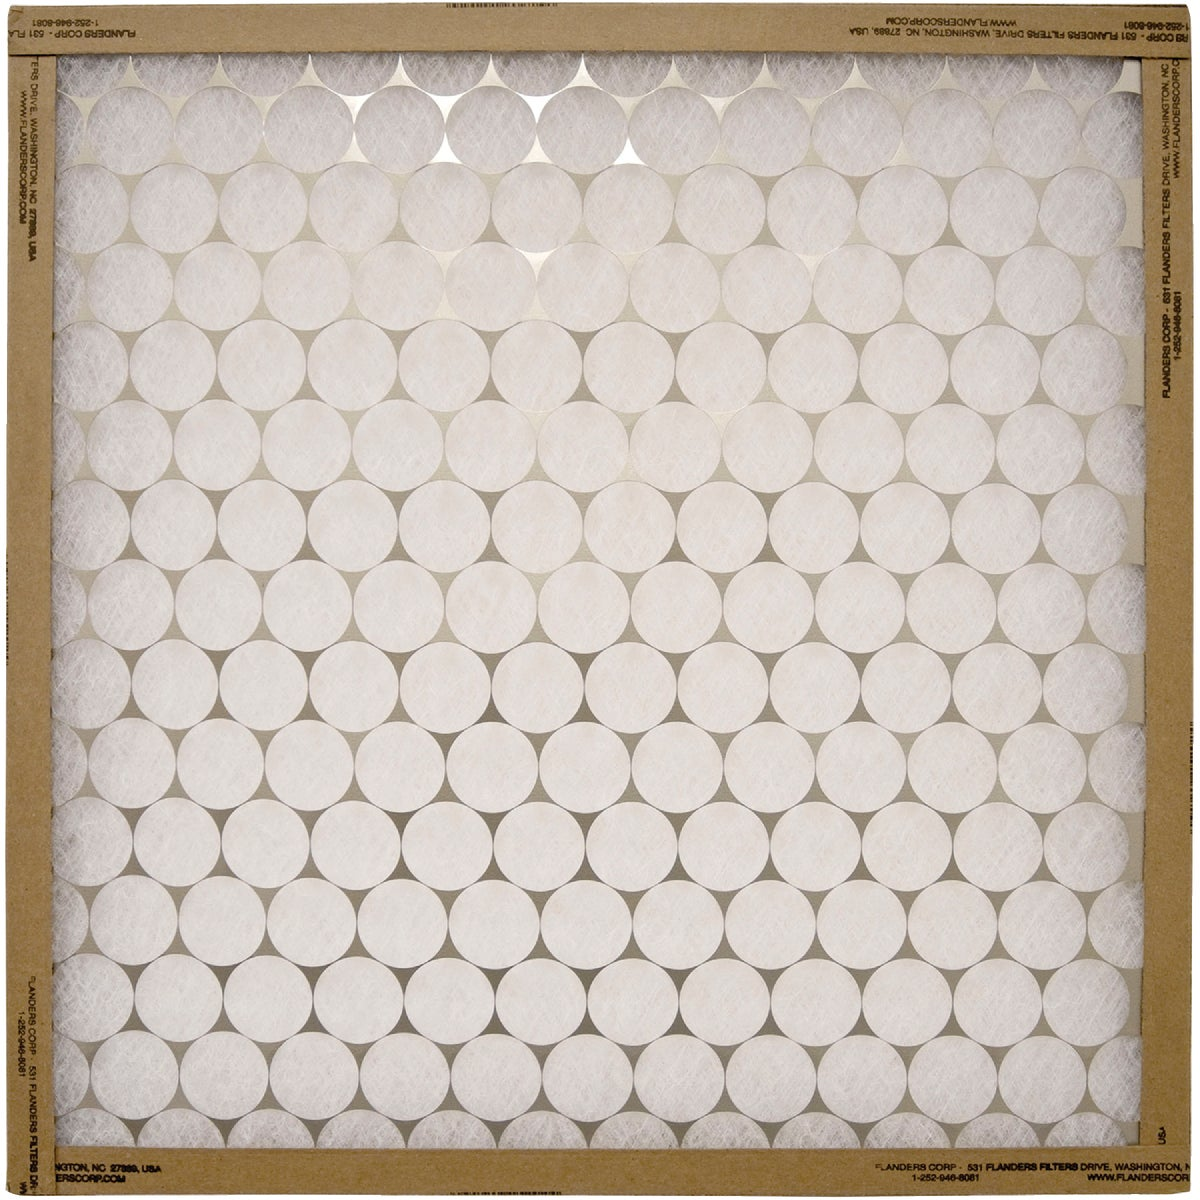 24X24 FURNACE FILTER - 10255.012424 by Flanders Corp